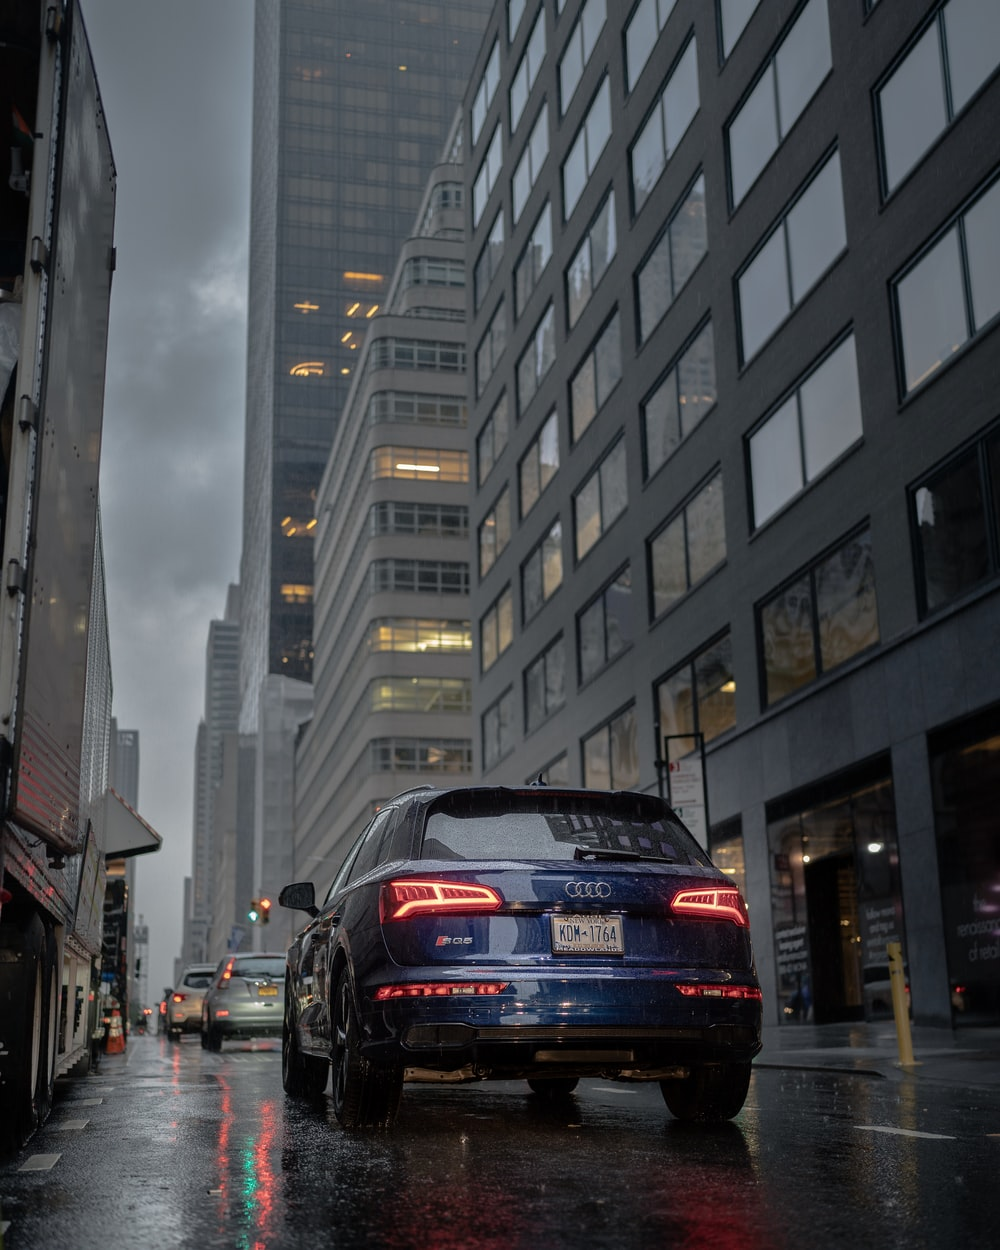 black audi a 4 on road in between high rise buildings during daytime